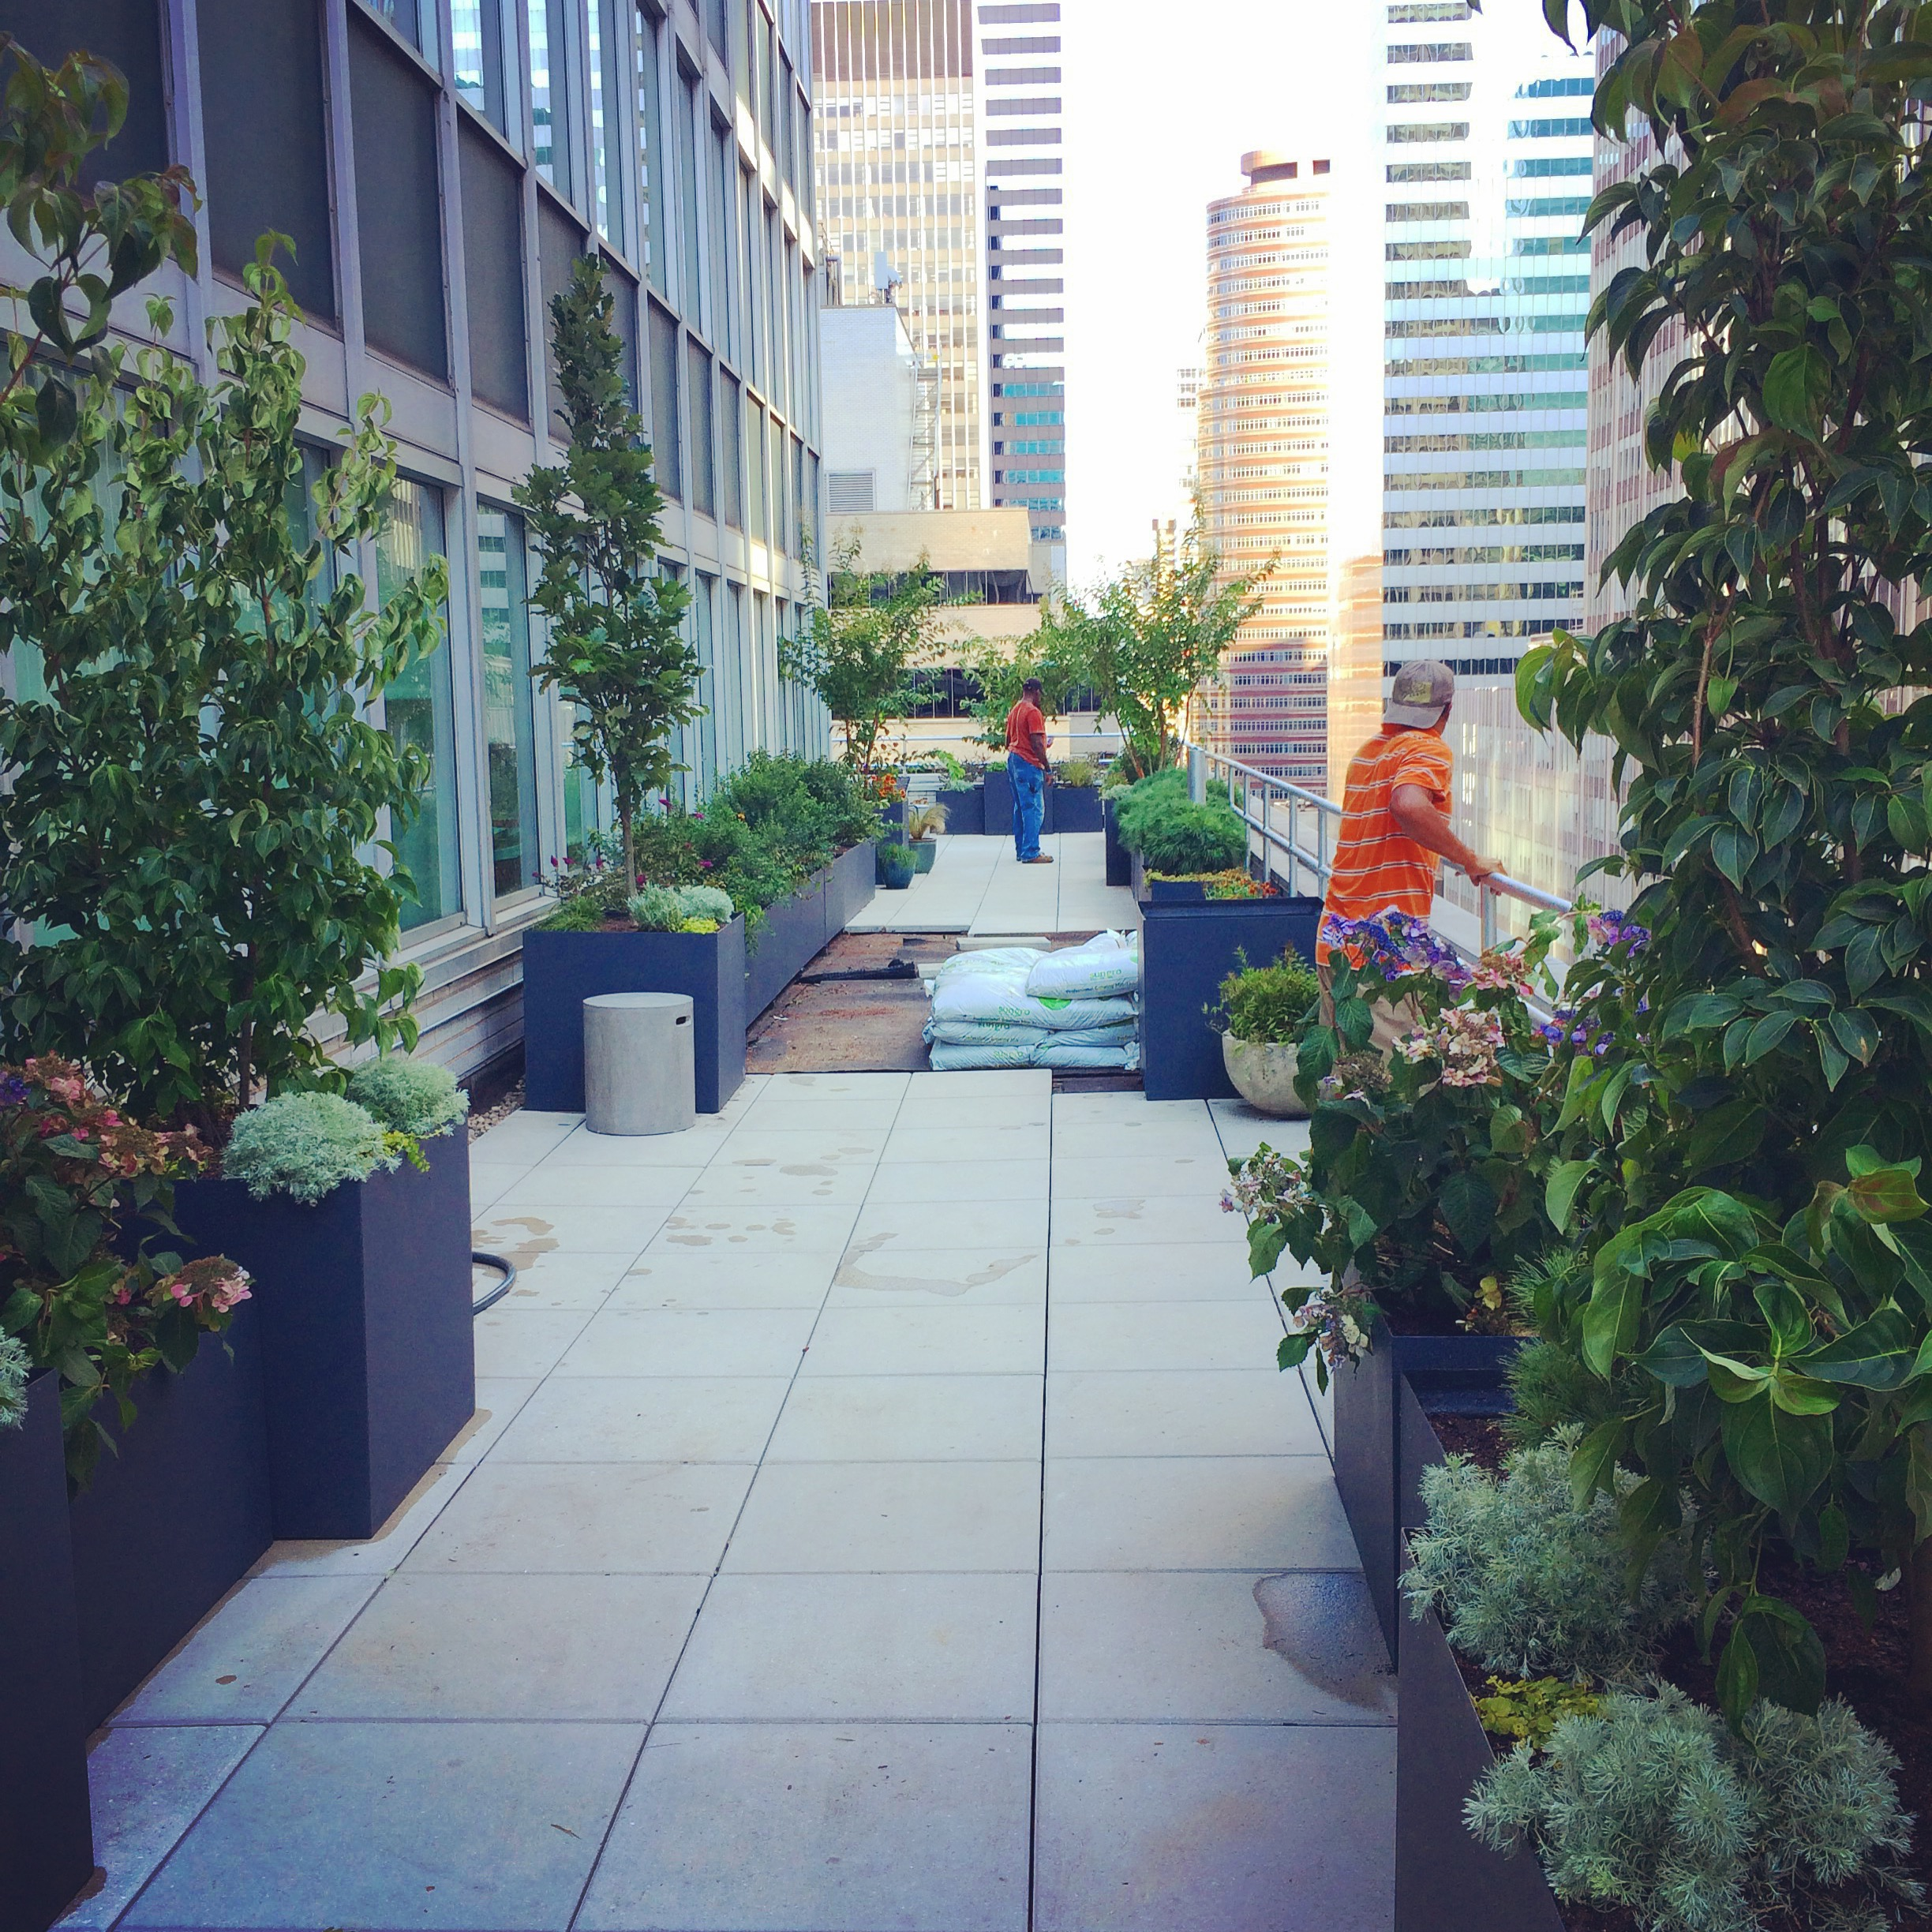 Installation of rooftop garden in midtown Manhattan. The central area, with pavers removed, will soon be green roof.